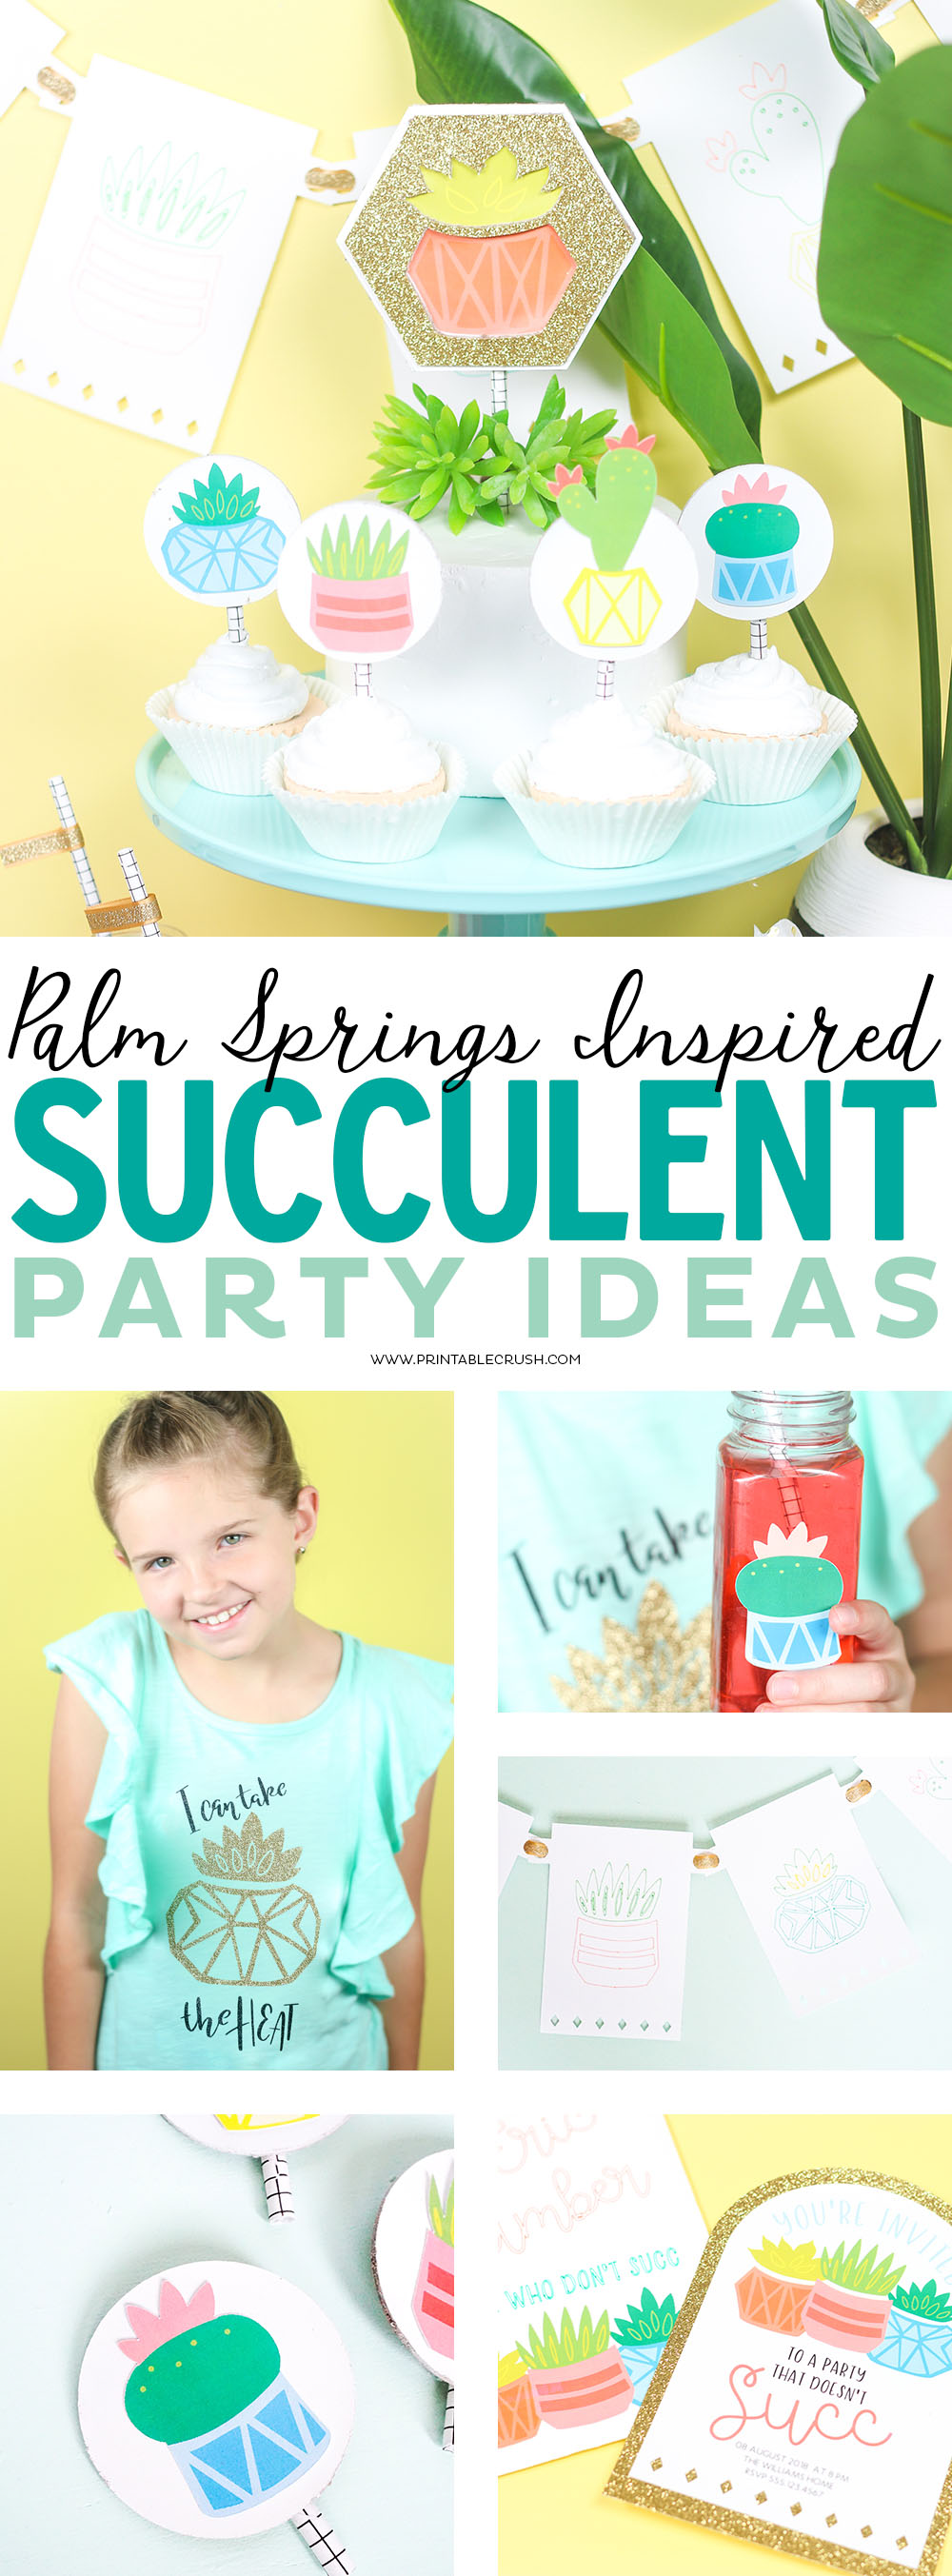 Throw the perfect end of summer party with thesePalm Springs-Inspired Succulent Party Ideas. Use your Cricut to make these gorgeous party printables! #cricutpartyideas #succulent #partyideas via @printablecrush